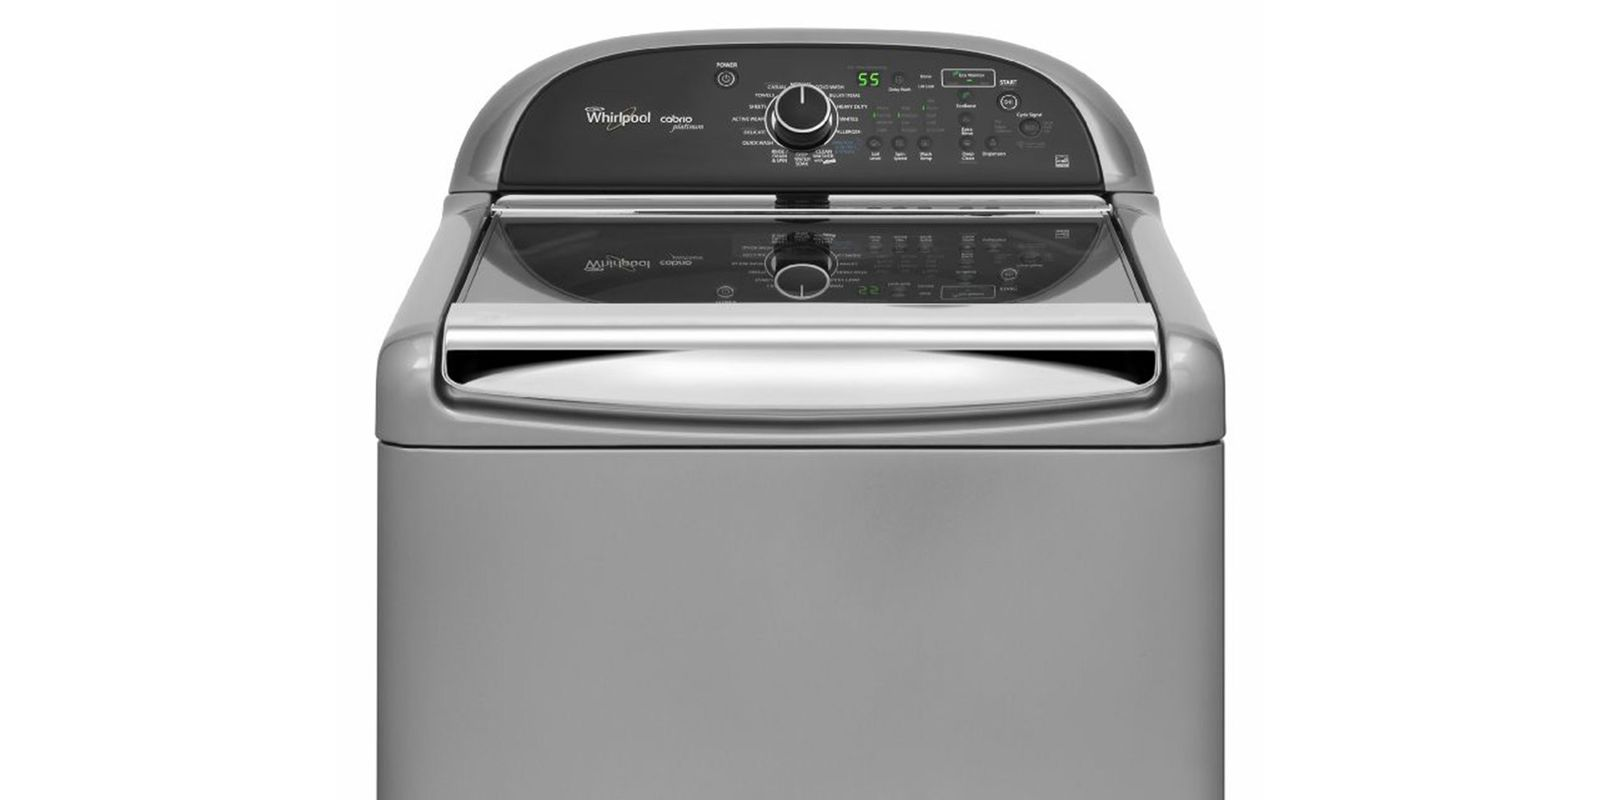 whirlpool cabrio platinum 48 cu ft he top load washer with sanitary cycle wtw8900bc review